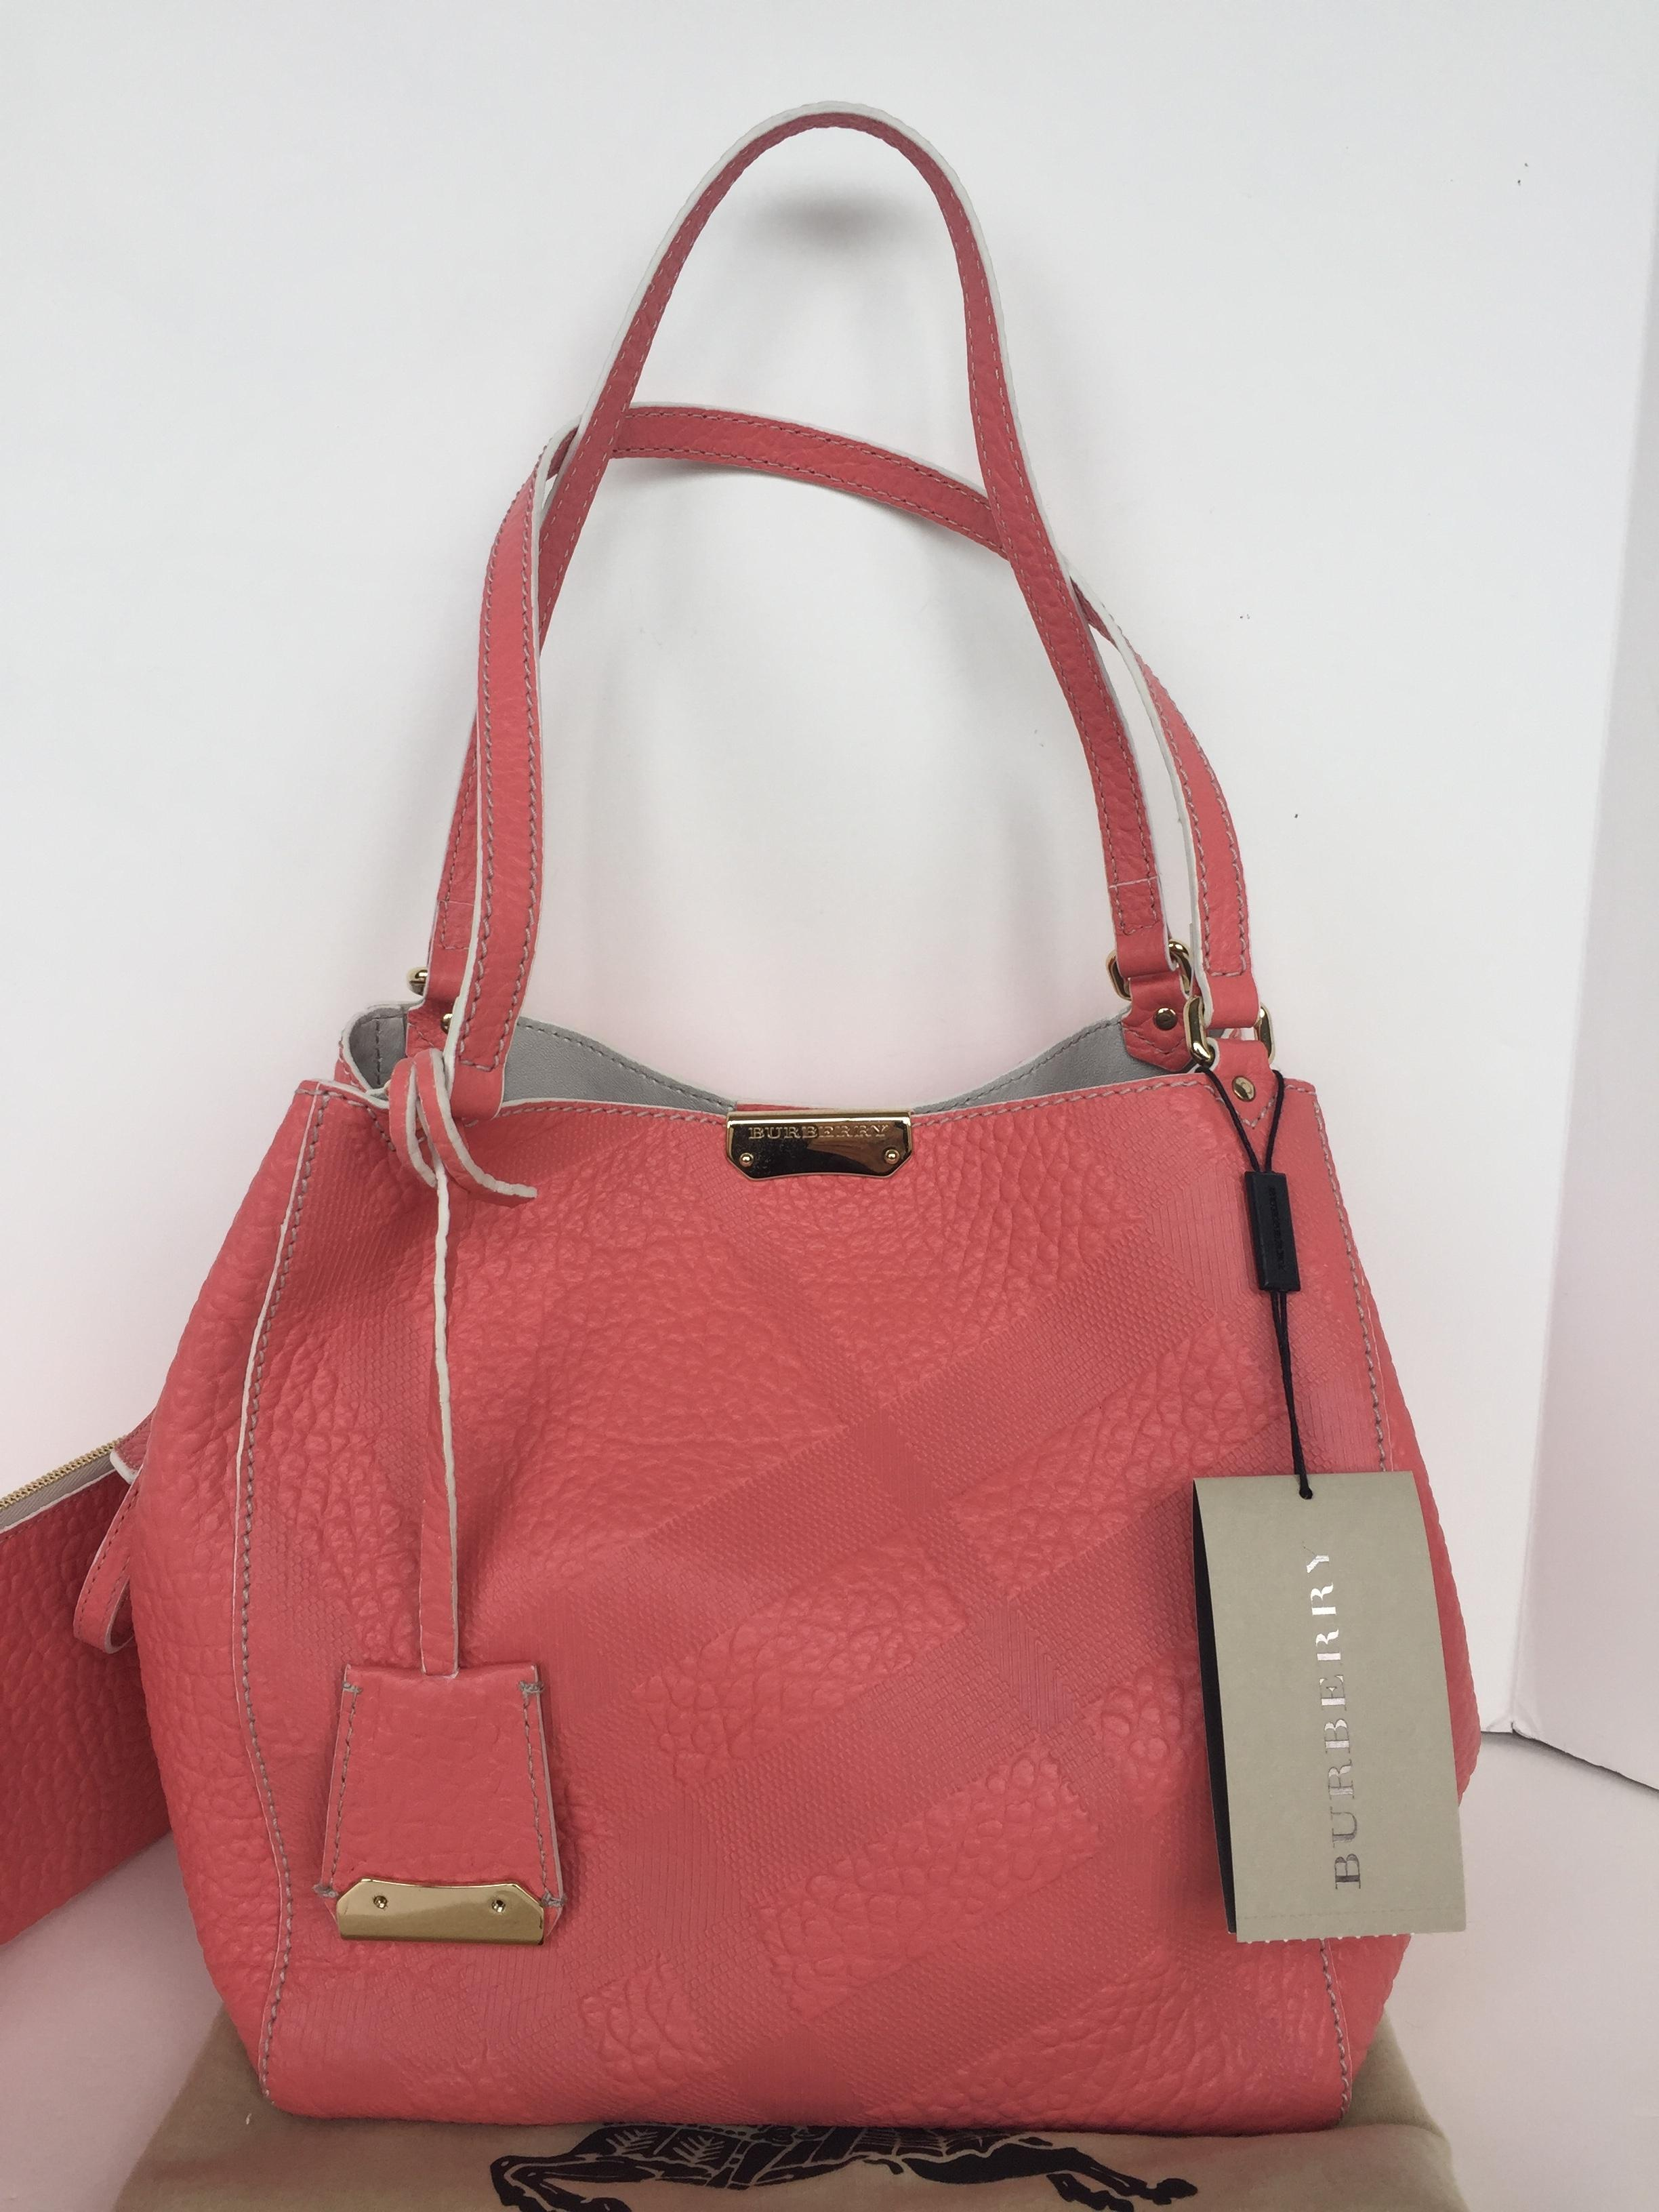 burberry tote bag red 067dd7cf6f